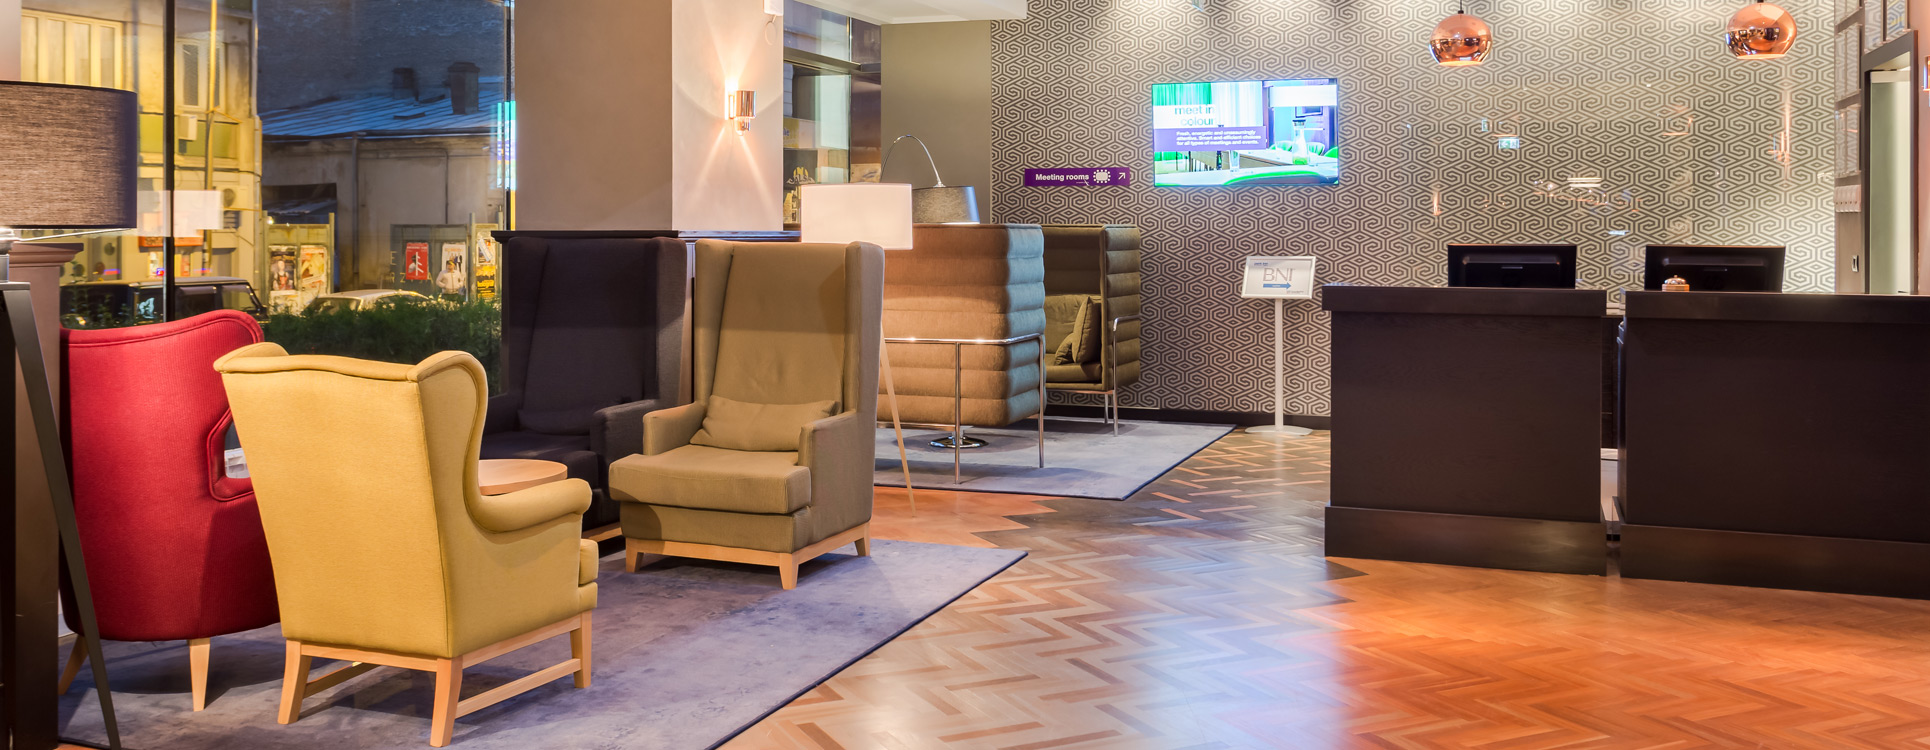 mobilier-lobby